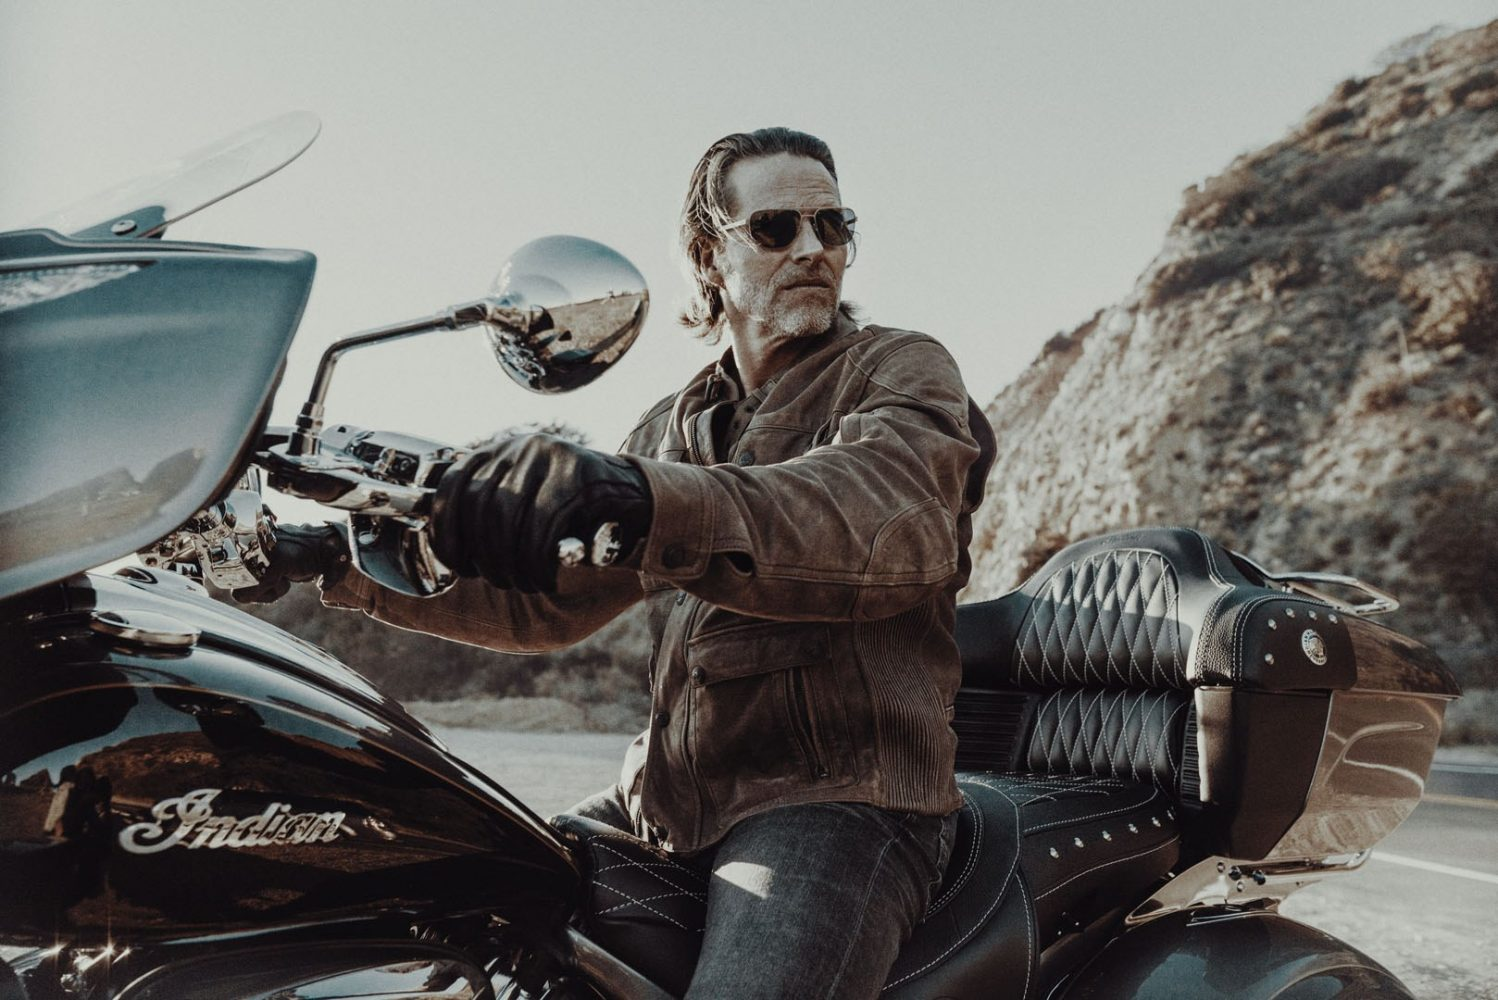 Deanbradshaw Indianmotorcycles 14